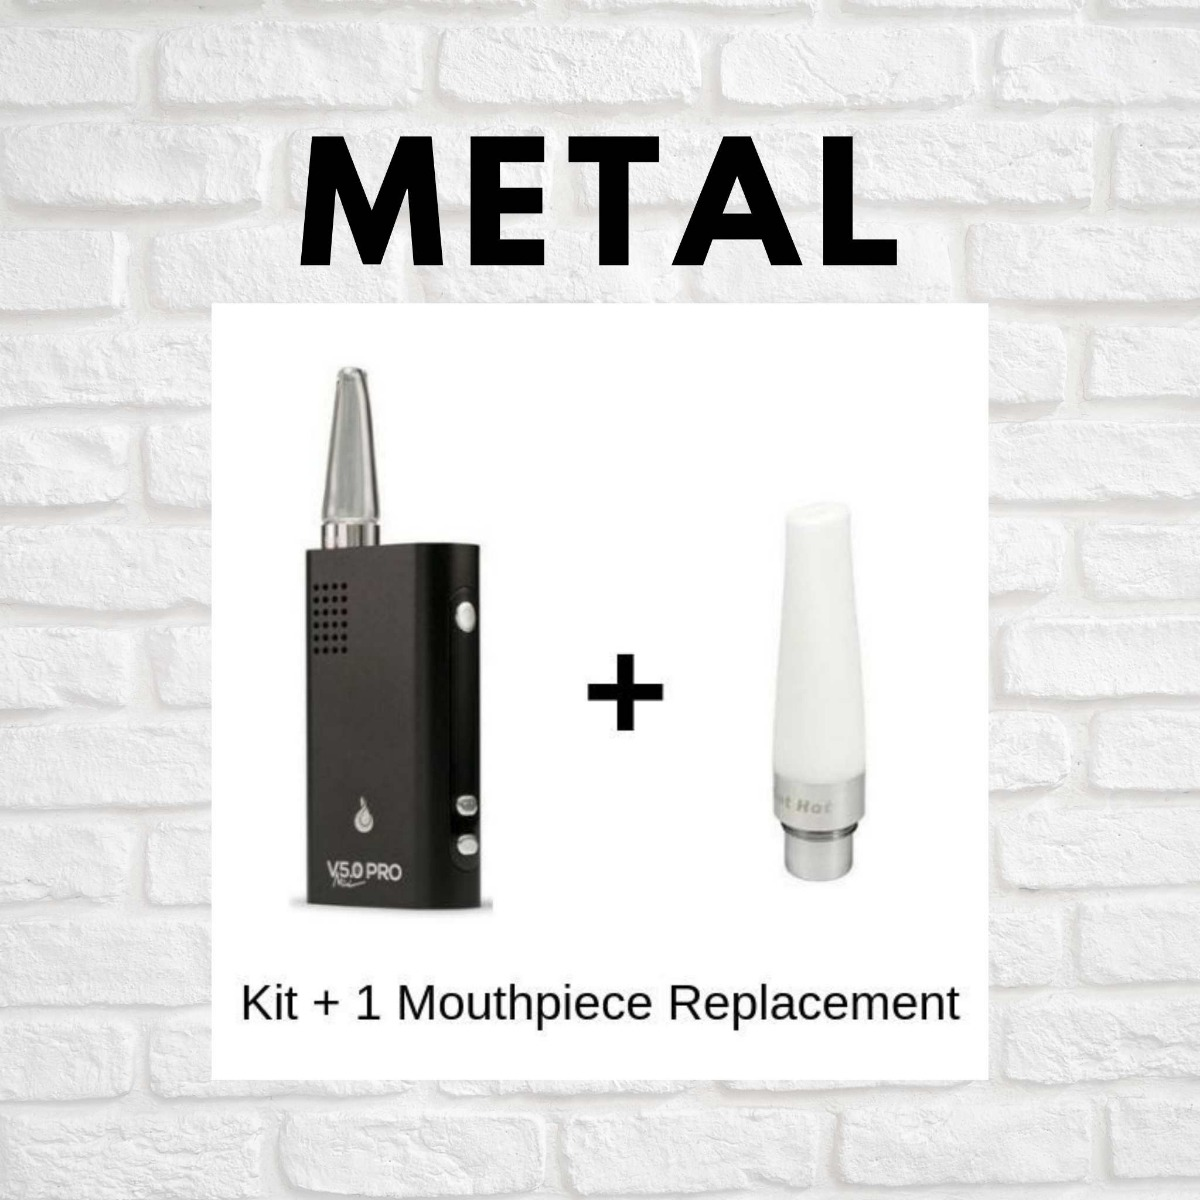 Metal mouthpiece is being shown on a black vaporizer with text saying metal